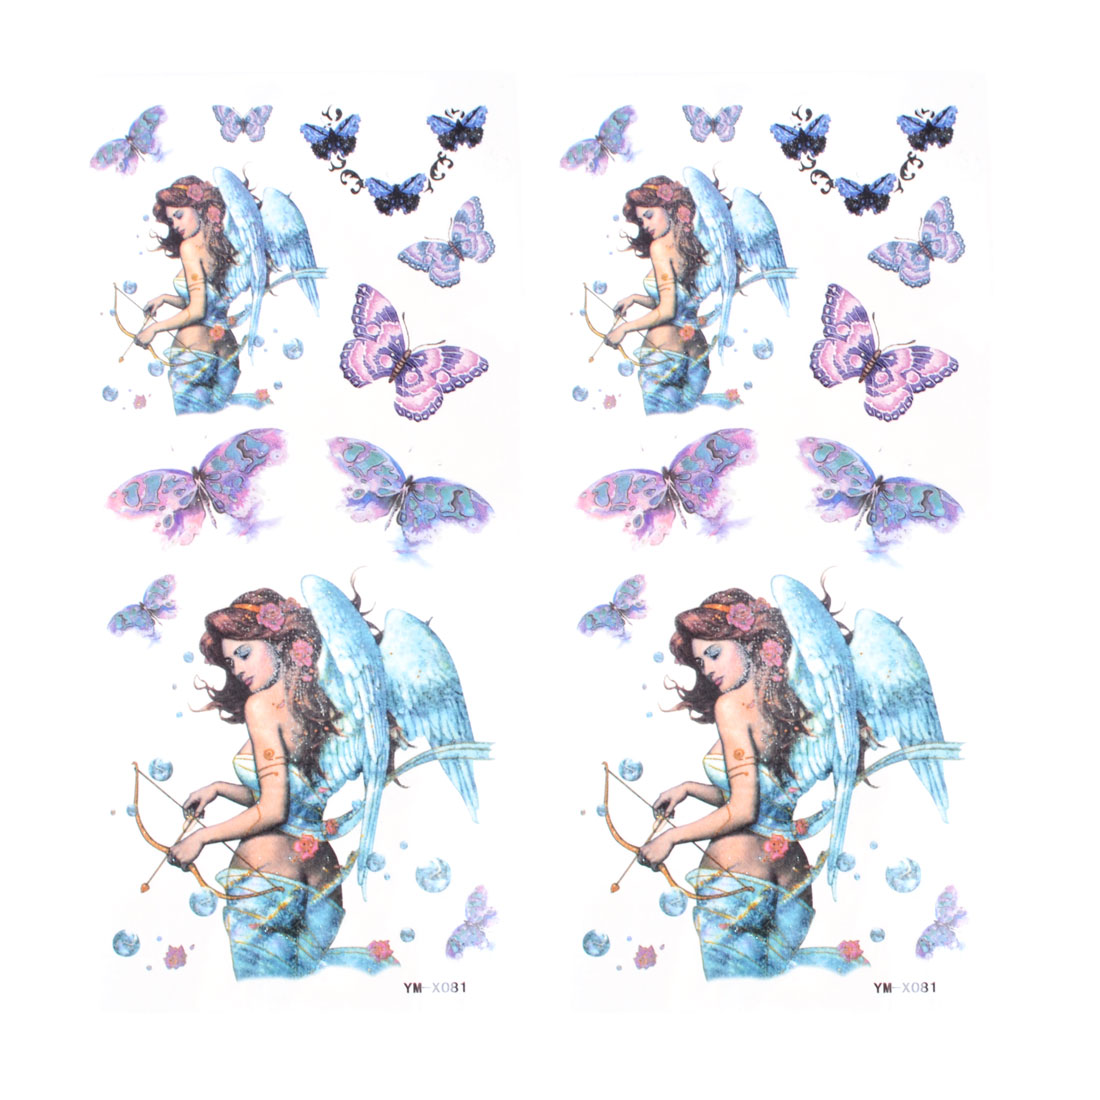 2pcs Skin Decorative Blue Purple Angel Butterfly Print Temporary Transfer Tattoos Sticker Beauty Tool